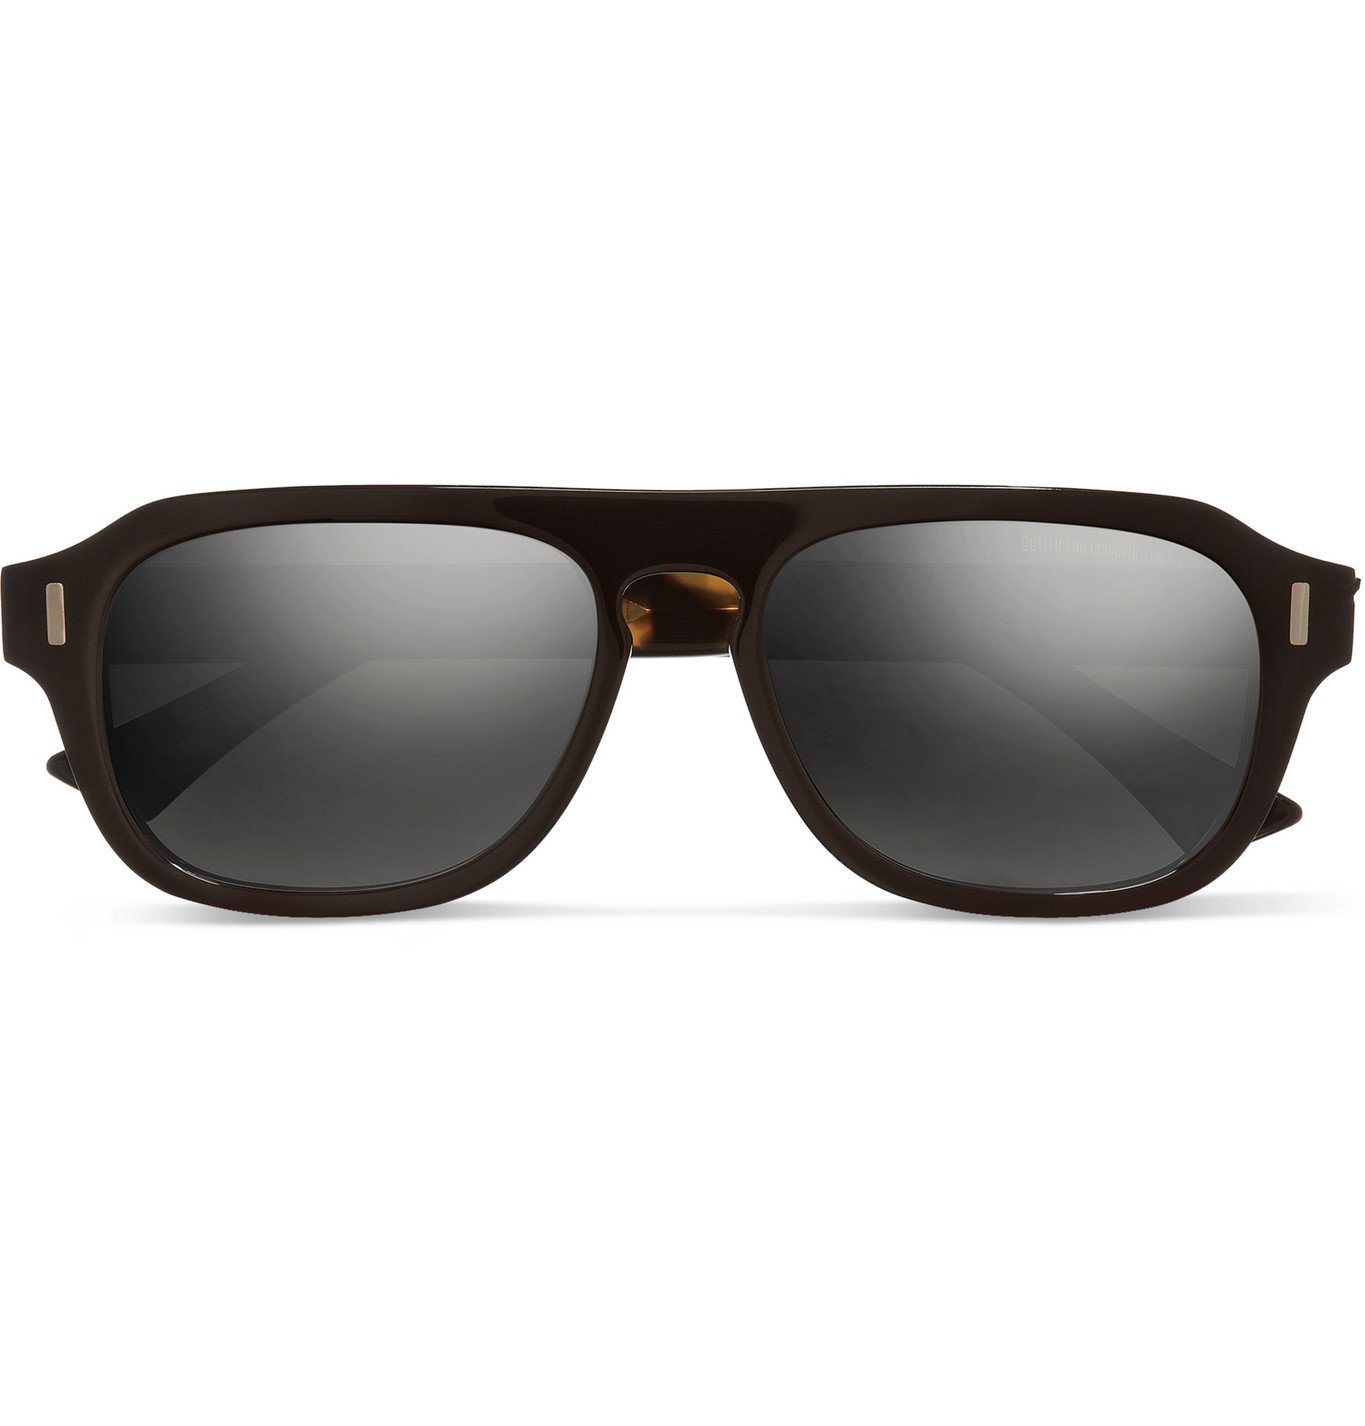 Photo: Cutler and Gross - D-Frame Acetate Sunglasses - Beige